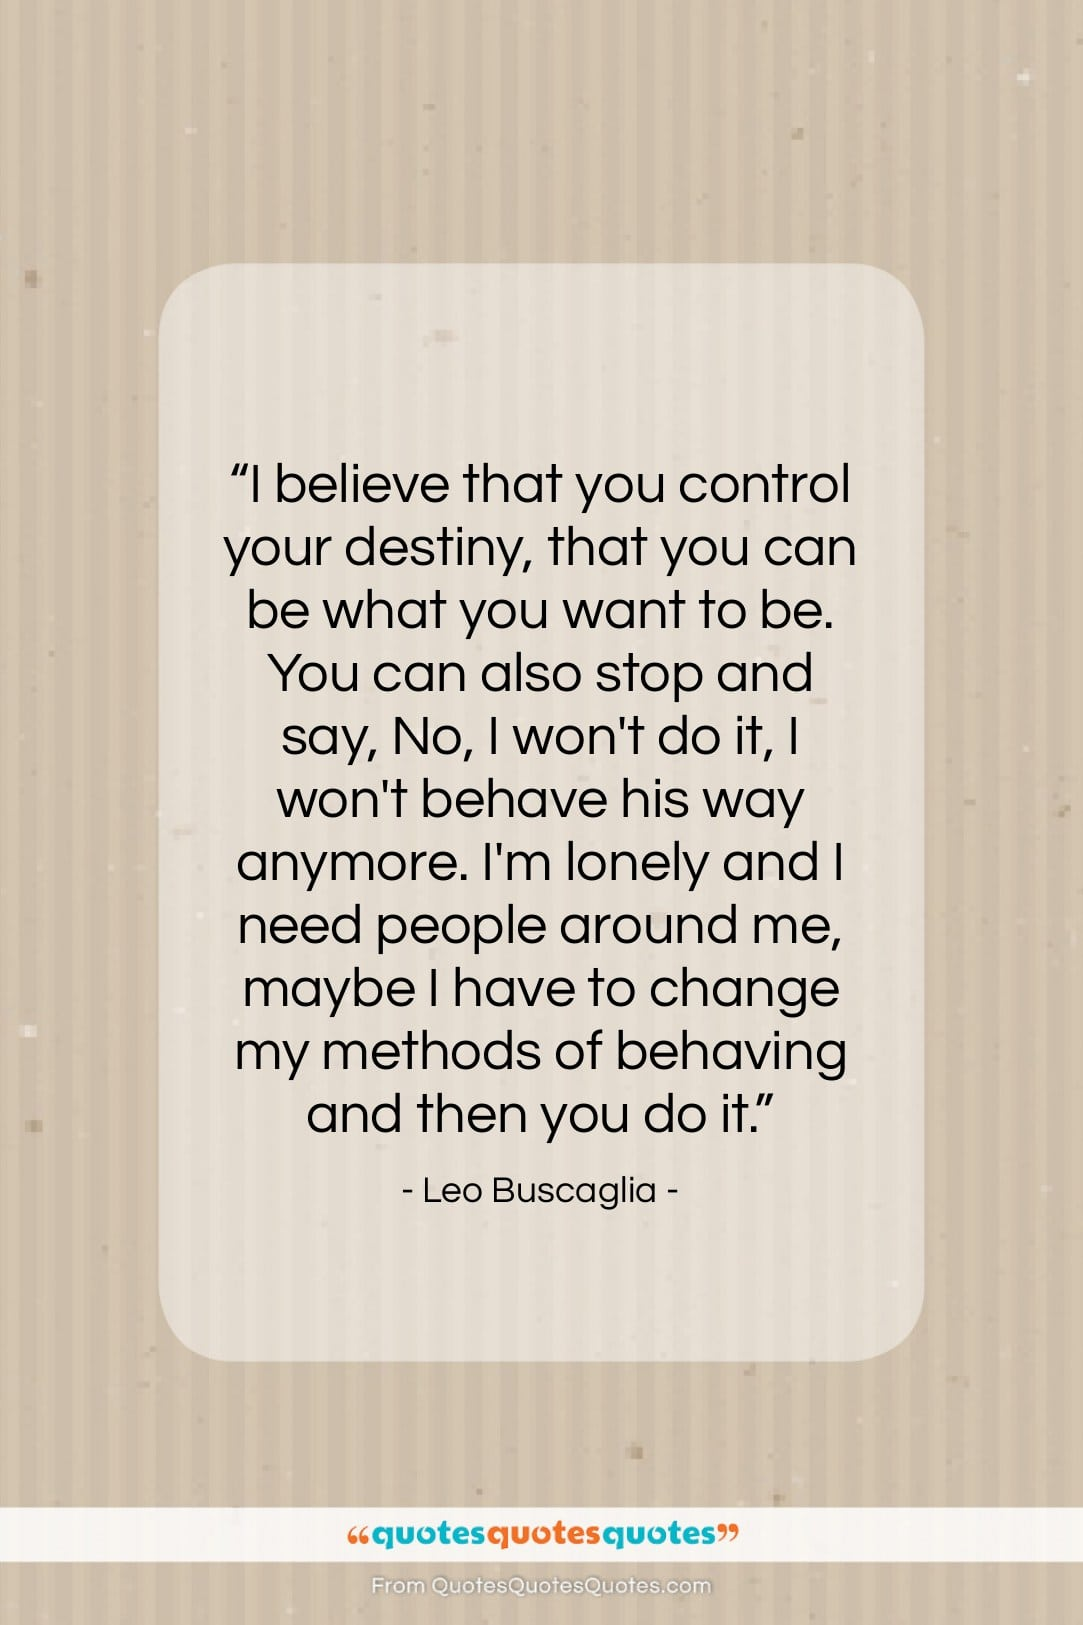 """Leo Buscaglia quote: """"I believe that you control your destiny,…""""- at QuotesQuotesQuotes.com"""